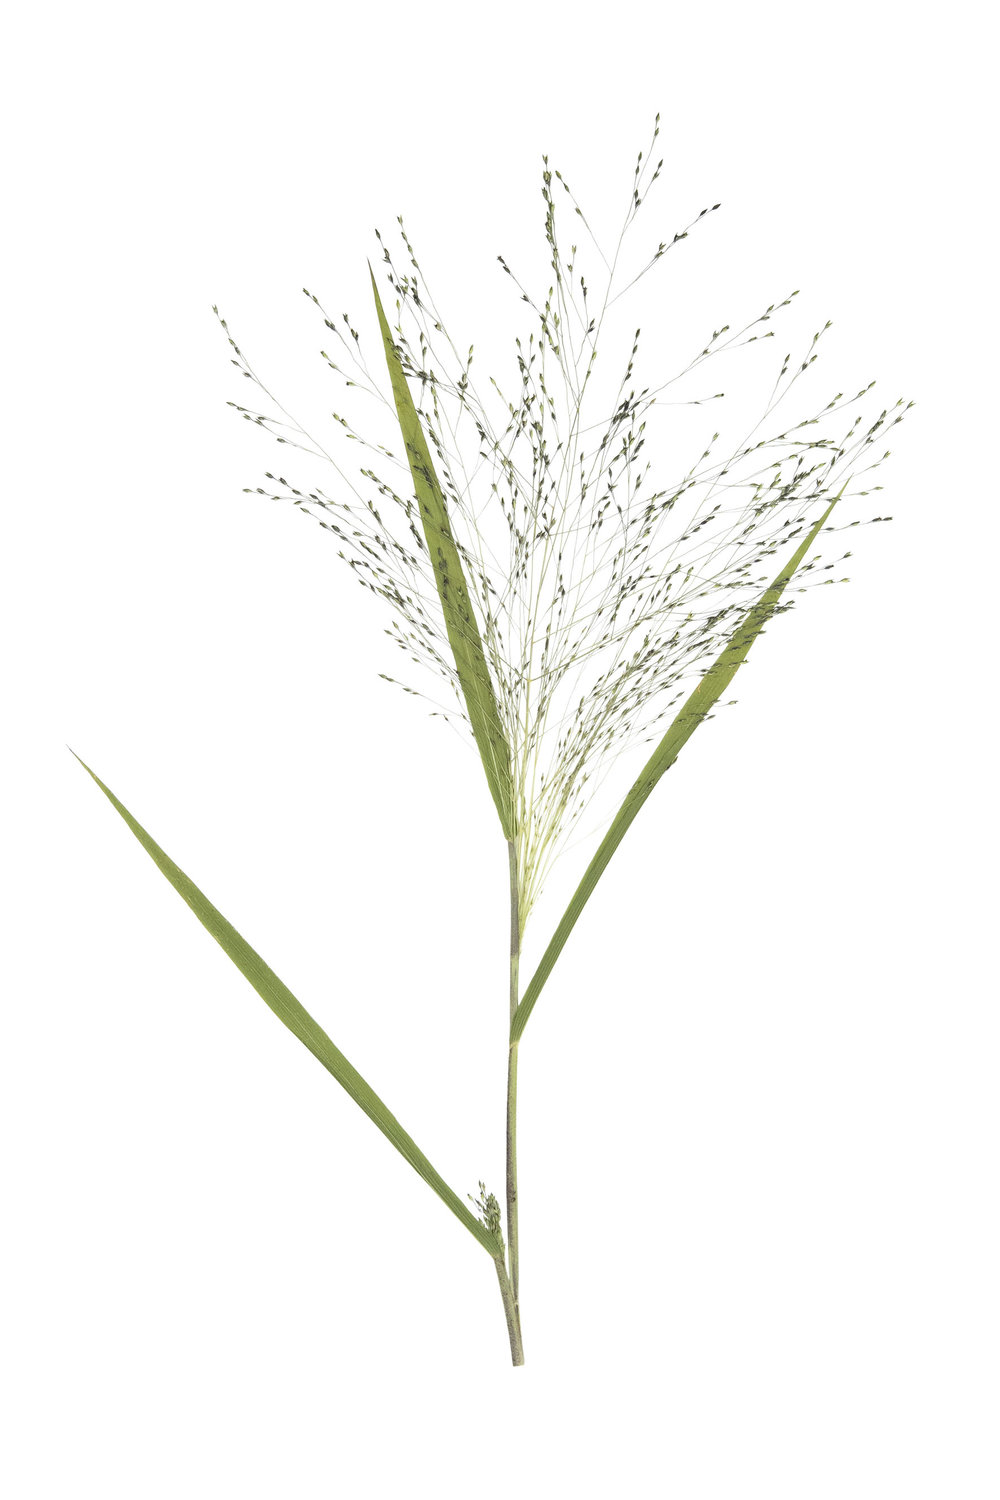 New! Witchgrass / Panicum capillare